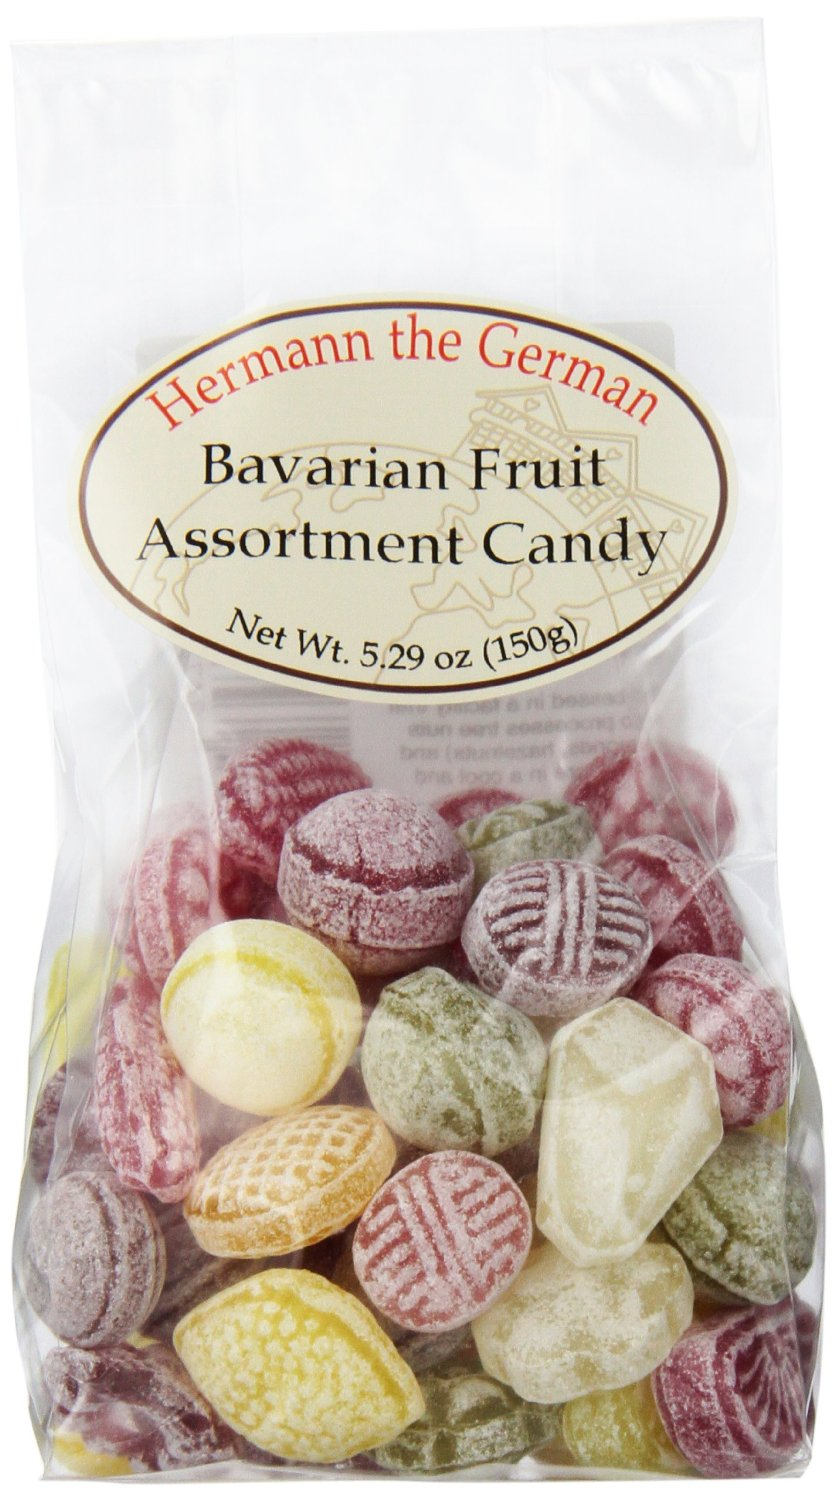 Hermann German Bavarian Fruit Candy